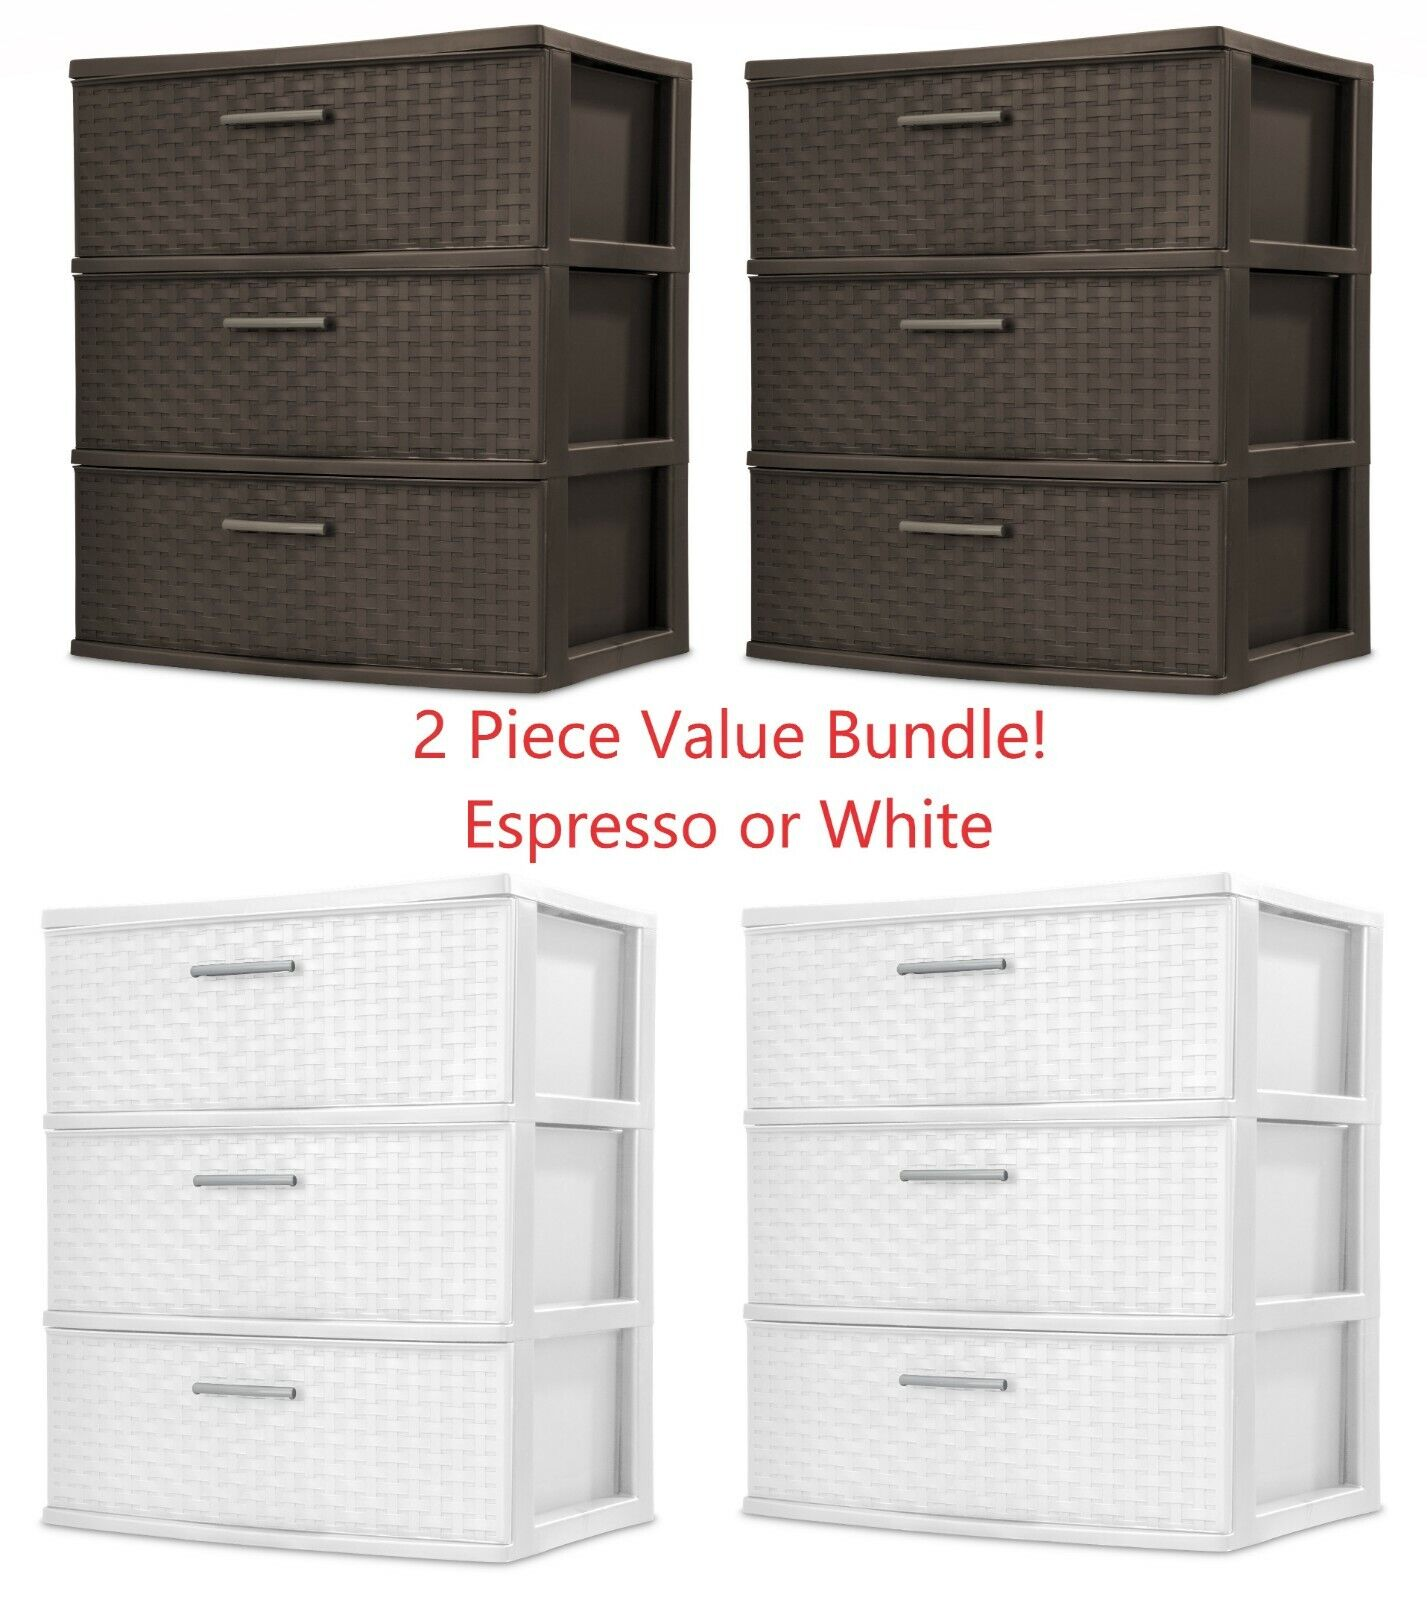 Dresser Storage 3 Drawer Bedroom Dorm Office Furniture Light